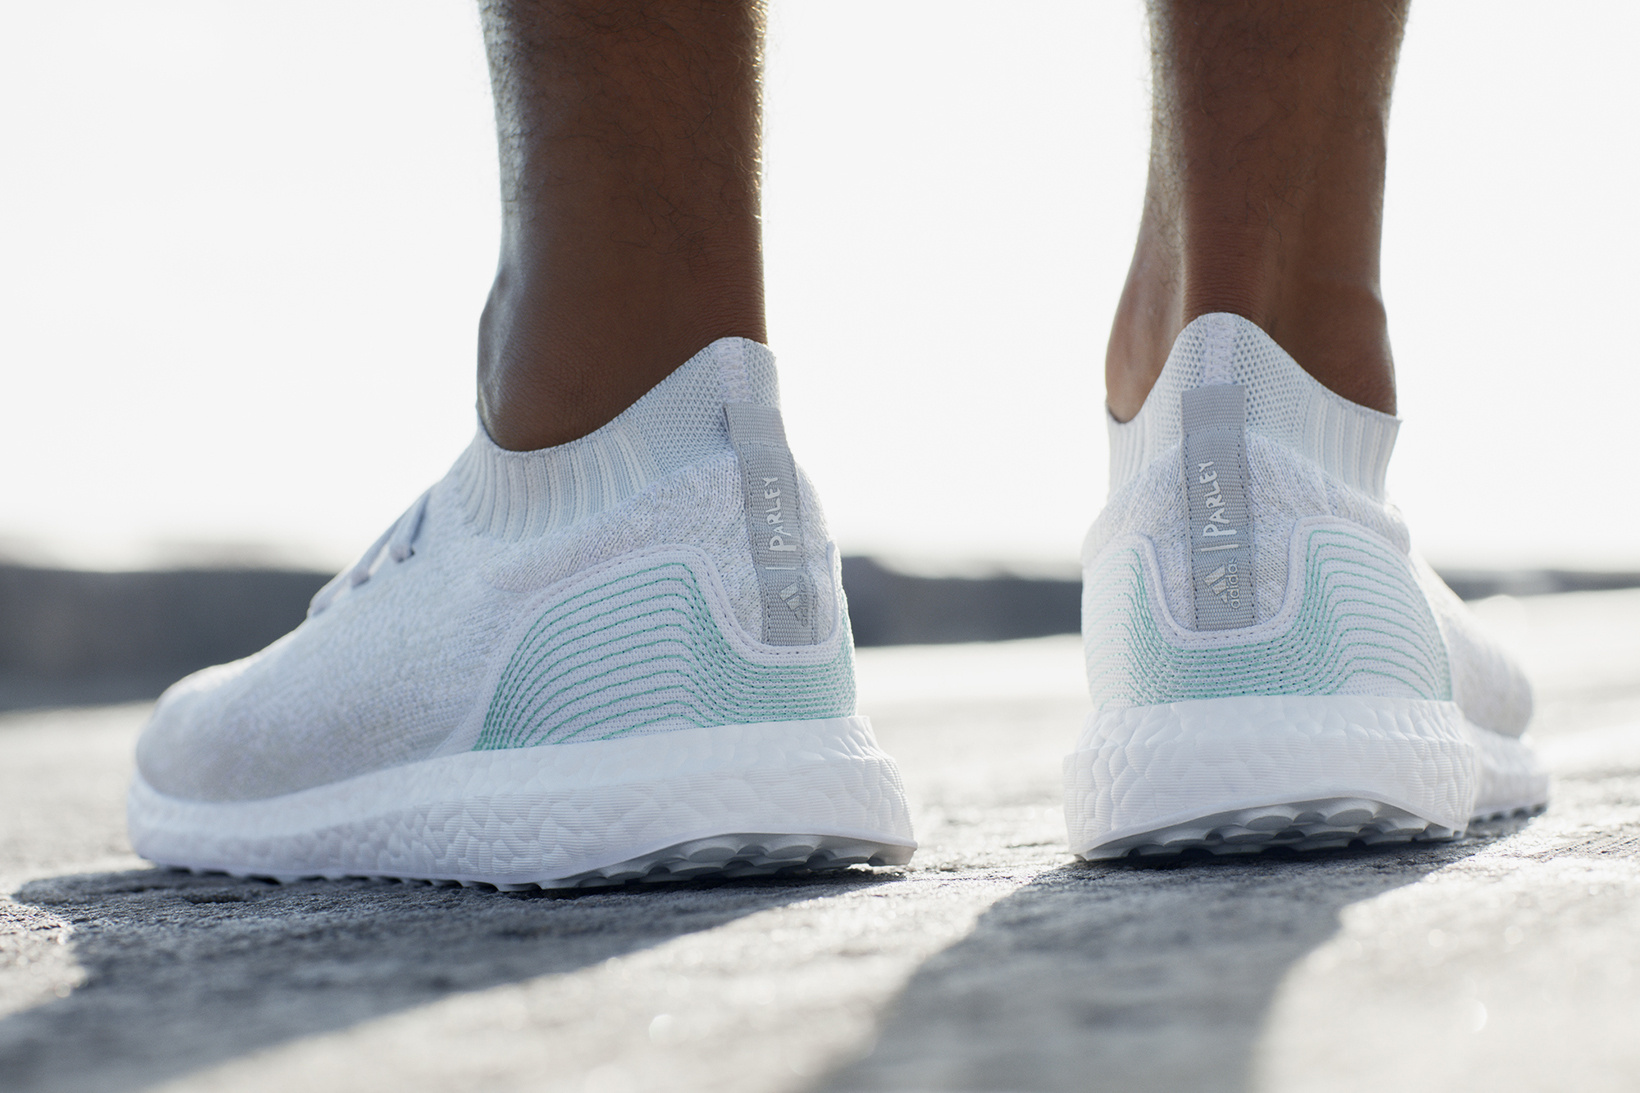 adidas-parley-for-the-oceans-ultra-boost-uncaged-football-jerseys-001.jpg